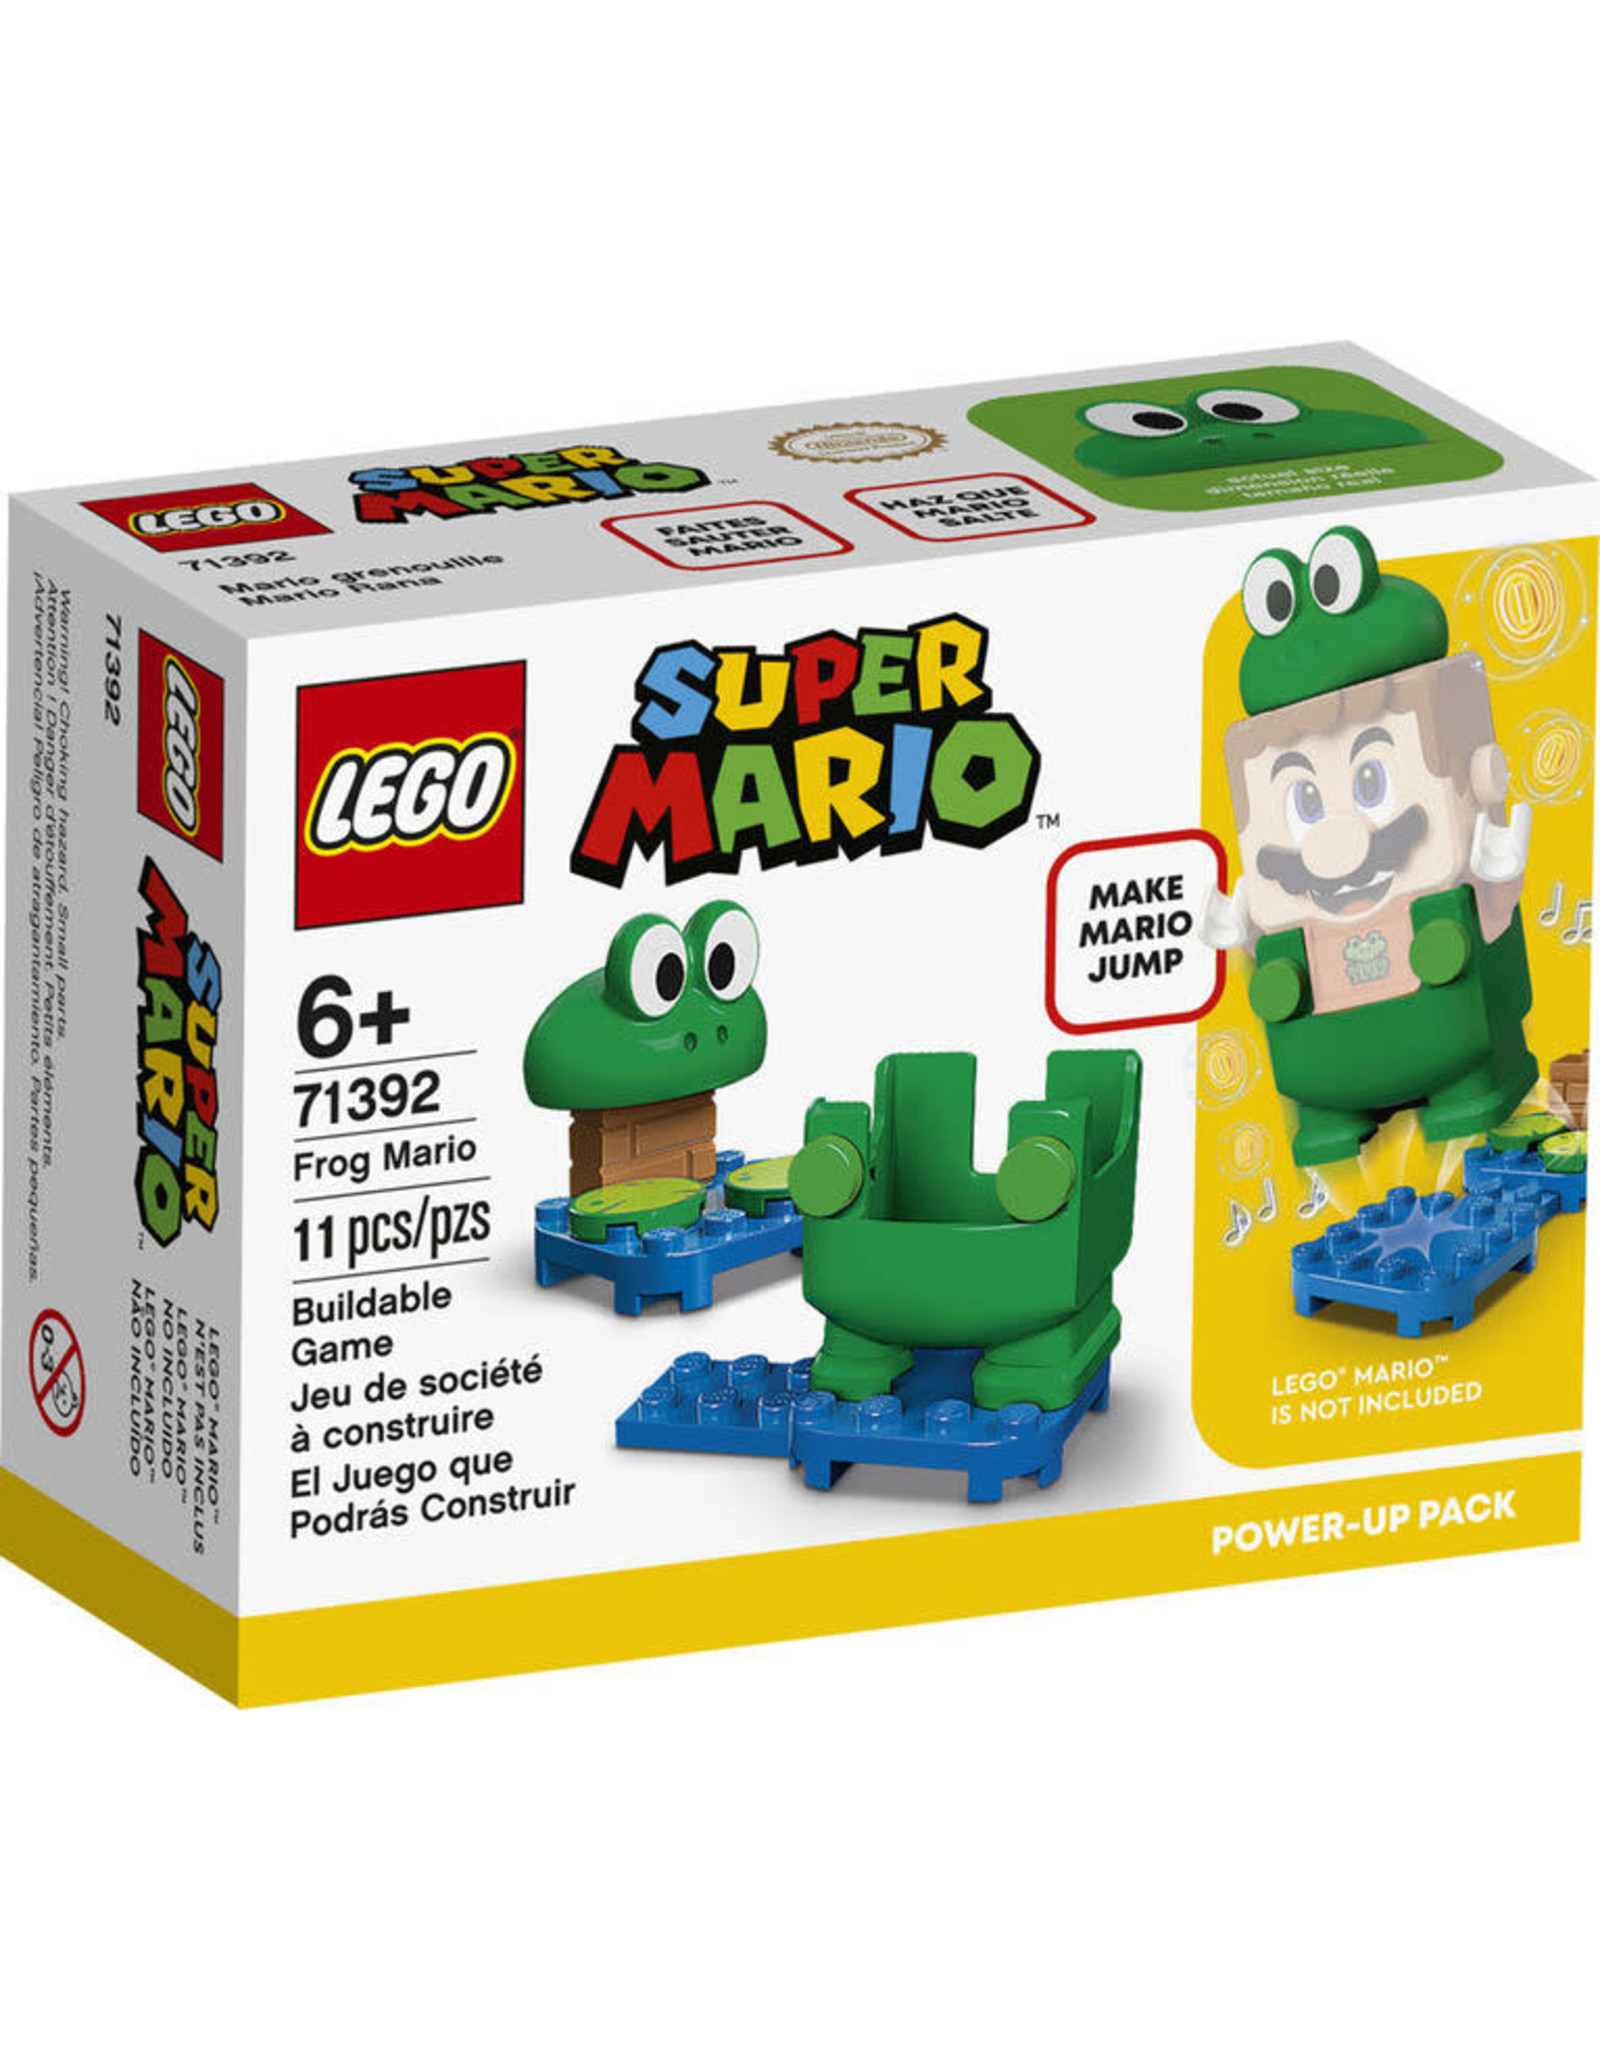 LEGO Frog Mario Power-Up Pack 71392